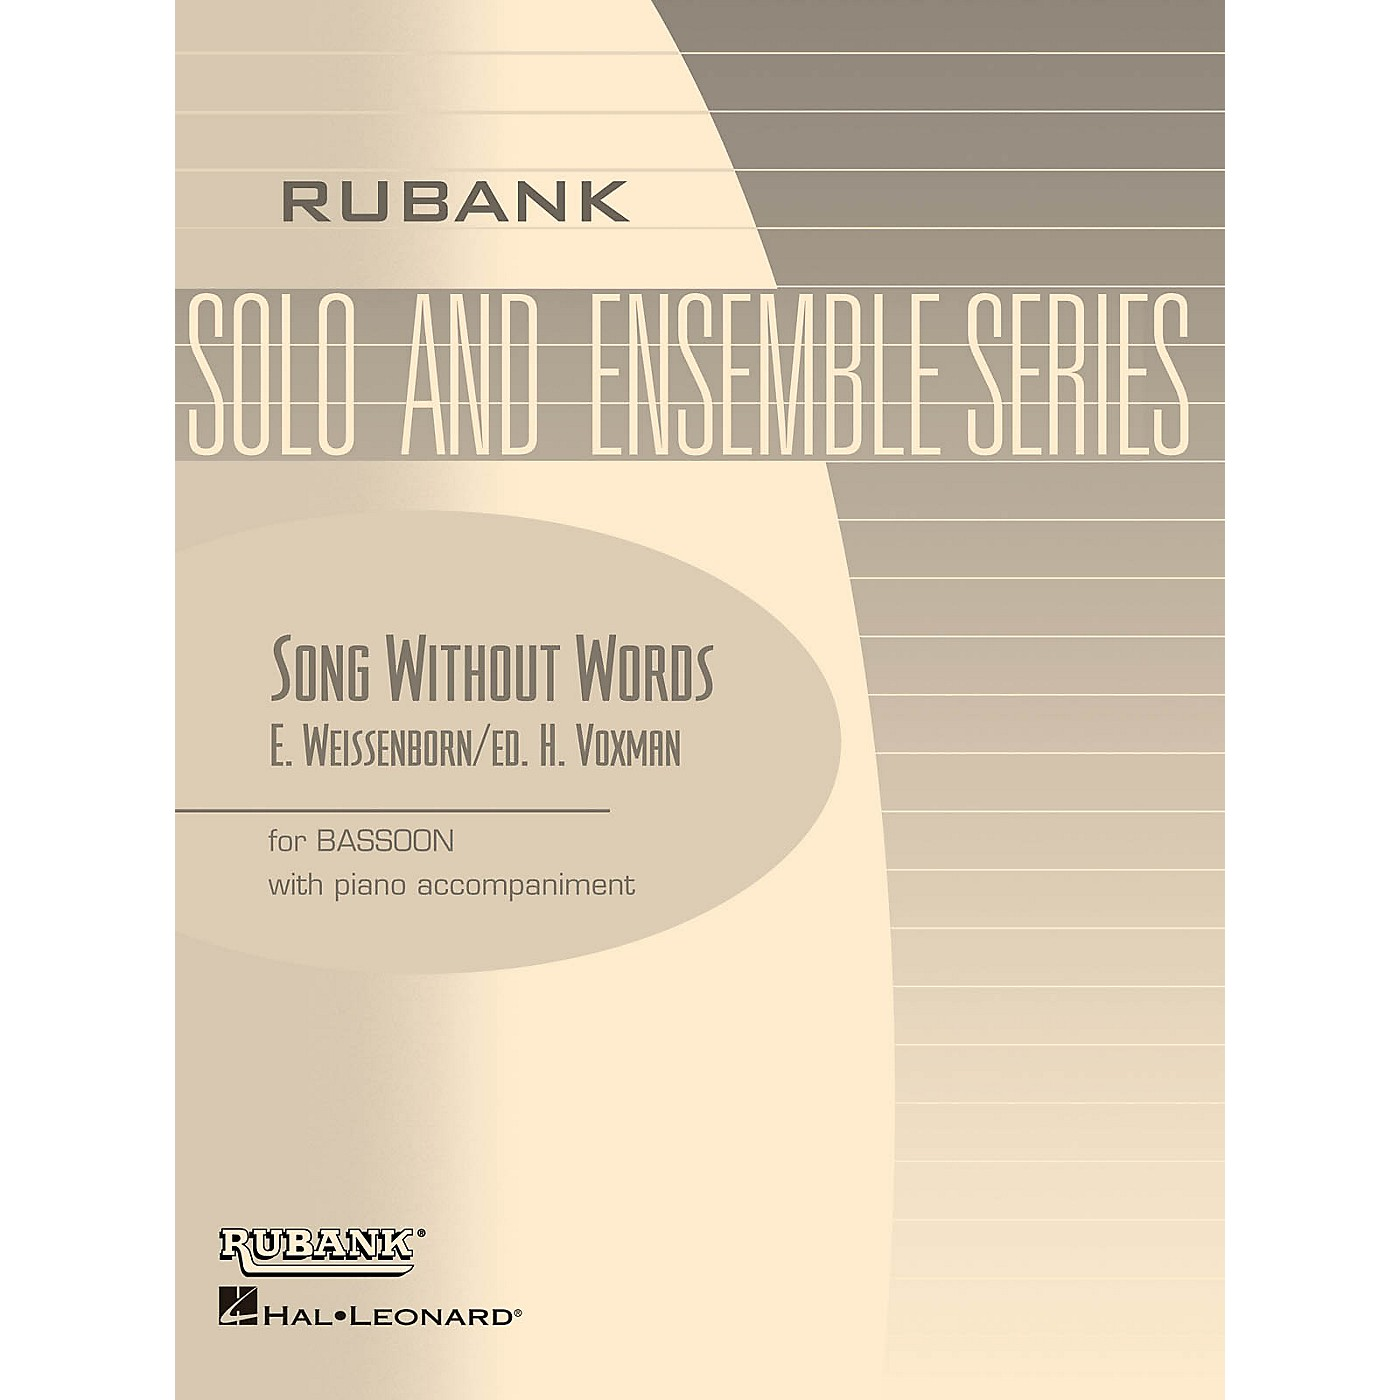 Rubank Publications Song Without Words, Op 226 (Bassoon Solo with Piano - Grade 2.5) Rubank Solo/Ensemble Sheet Series thumbnail